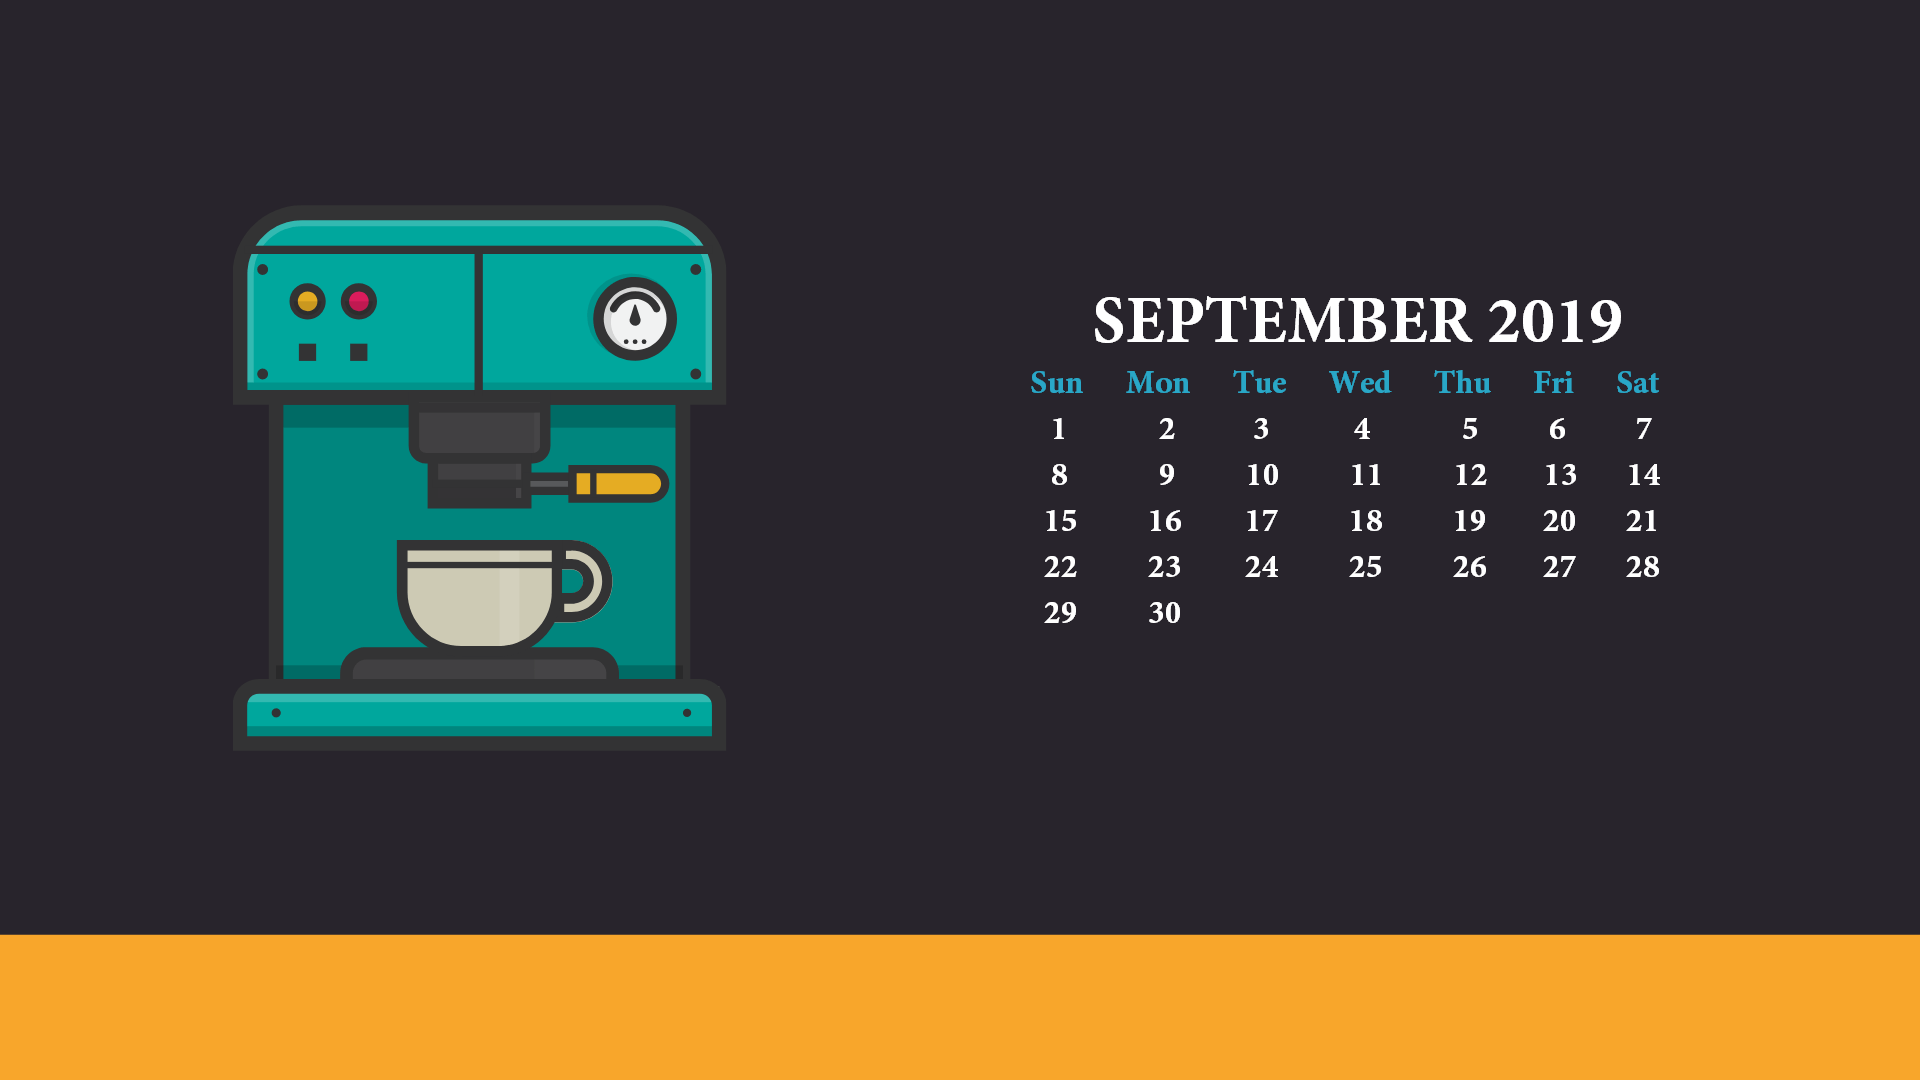 2019 Desktop Calendar Wallpapers